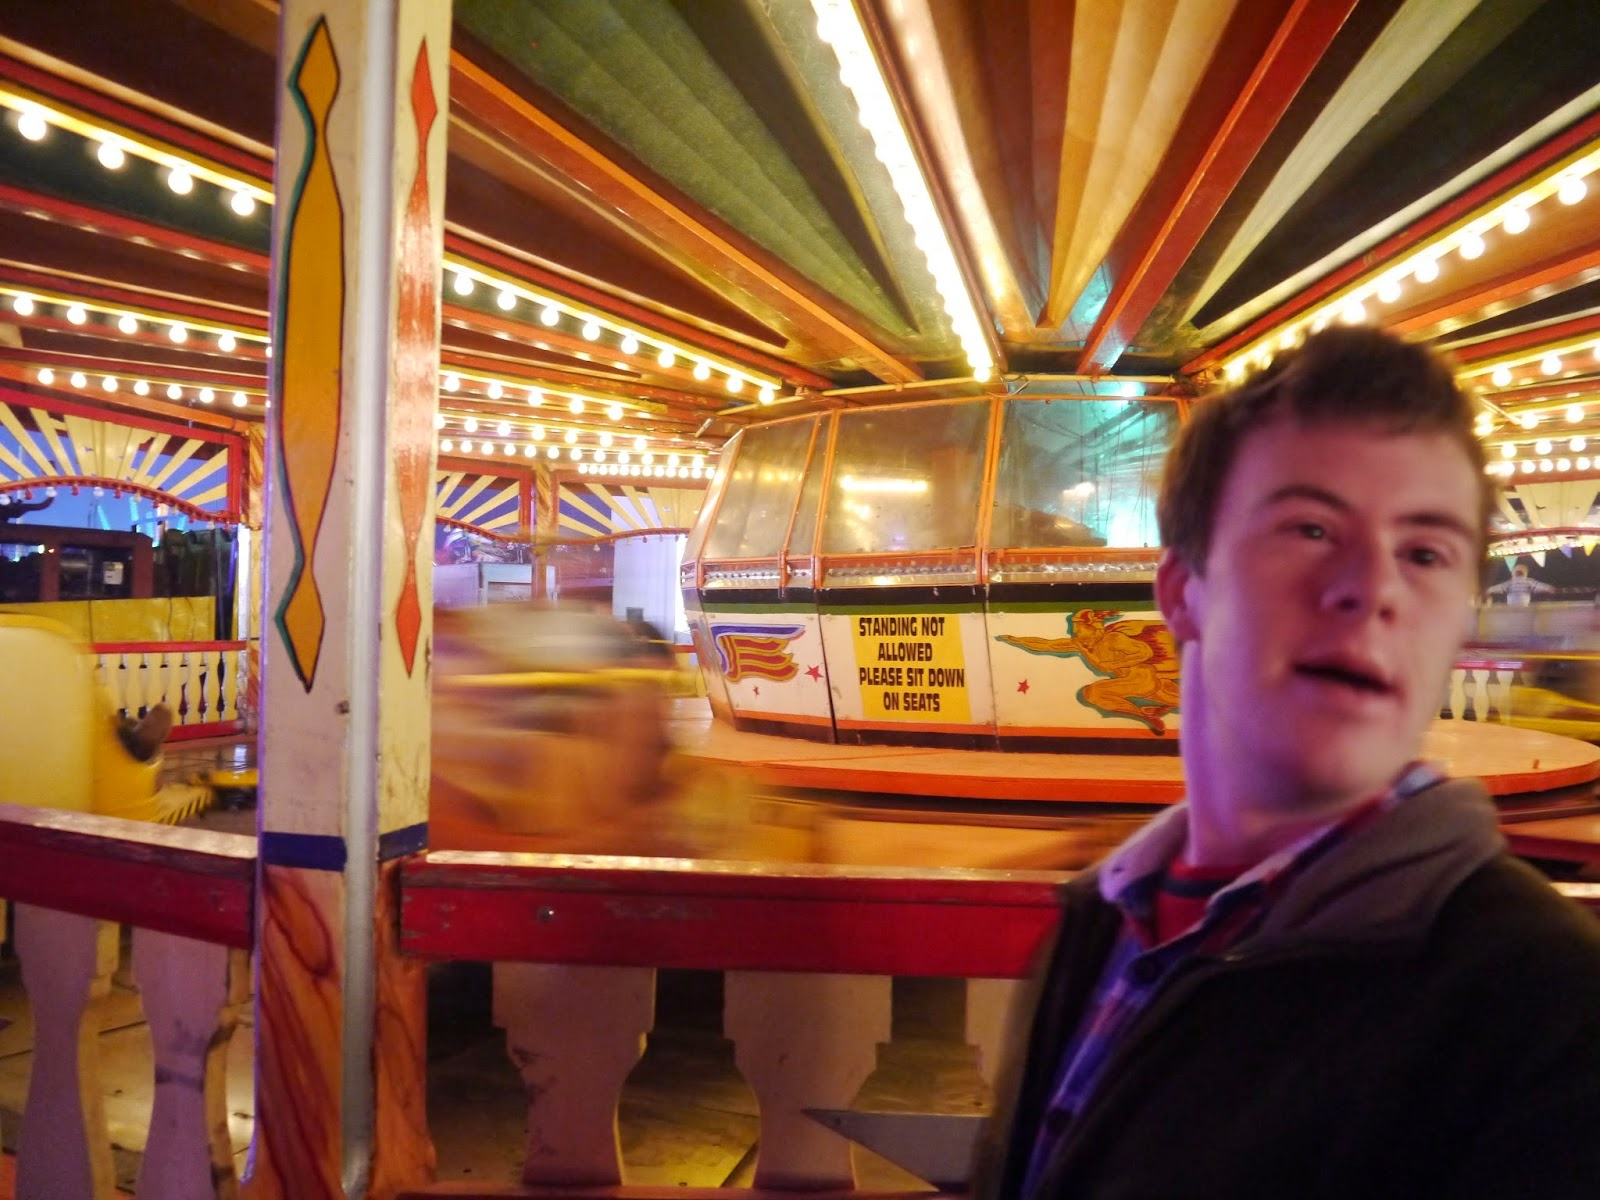 My brother at the fair